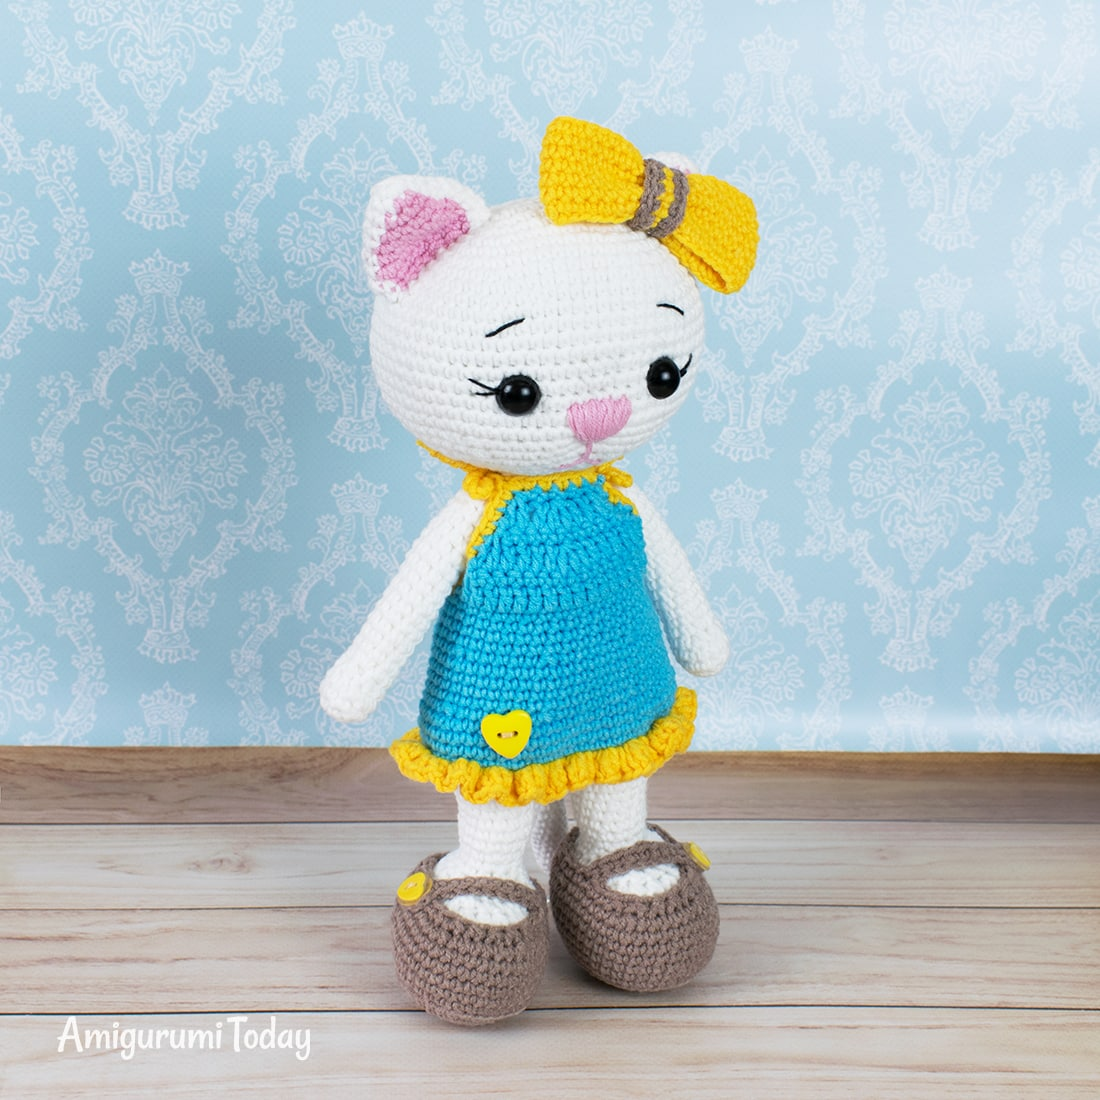 Free cat doll in sundress crochet pattern by Amigurumi Today